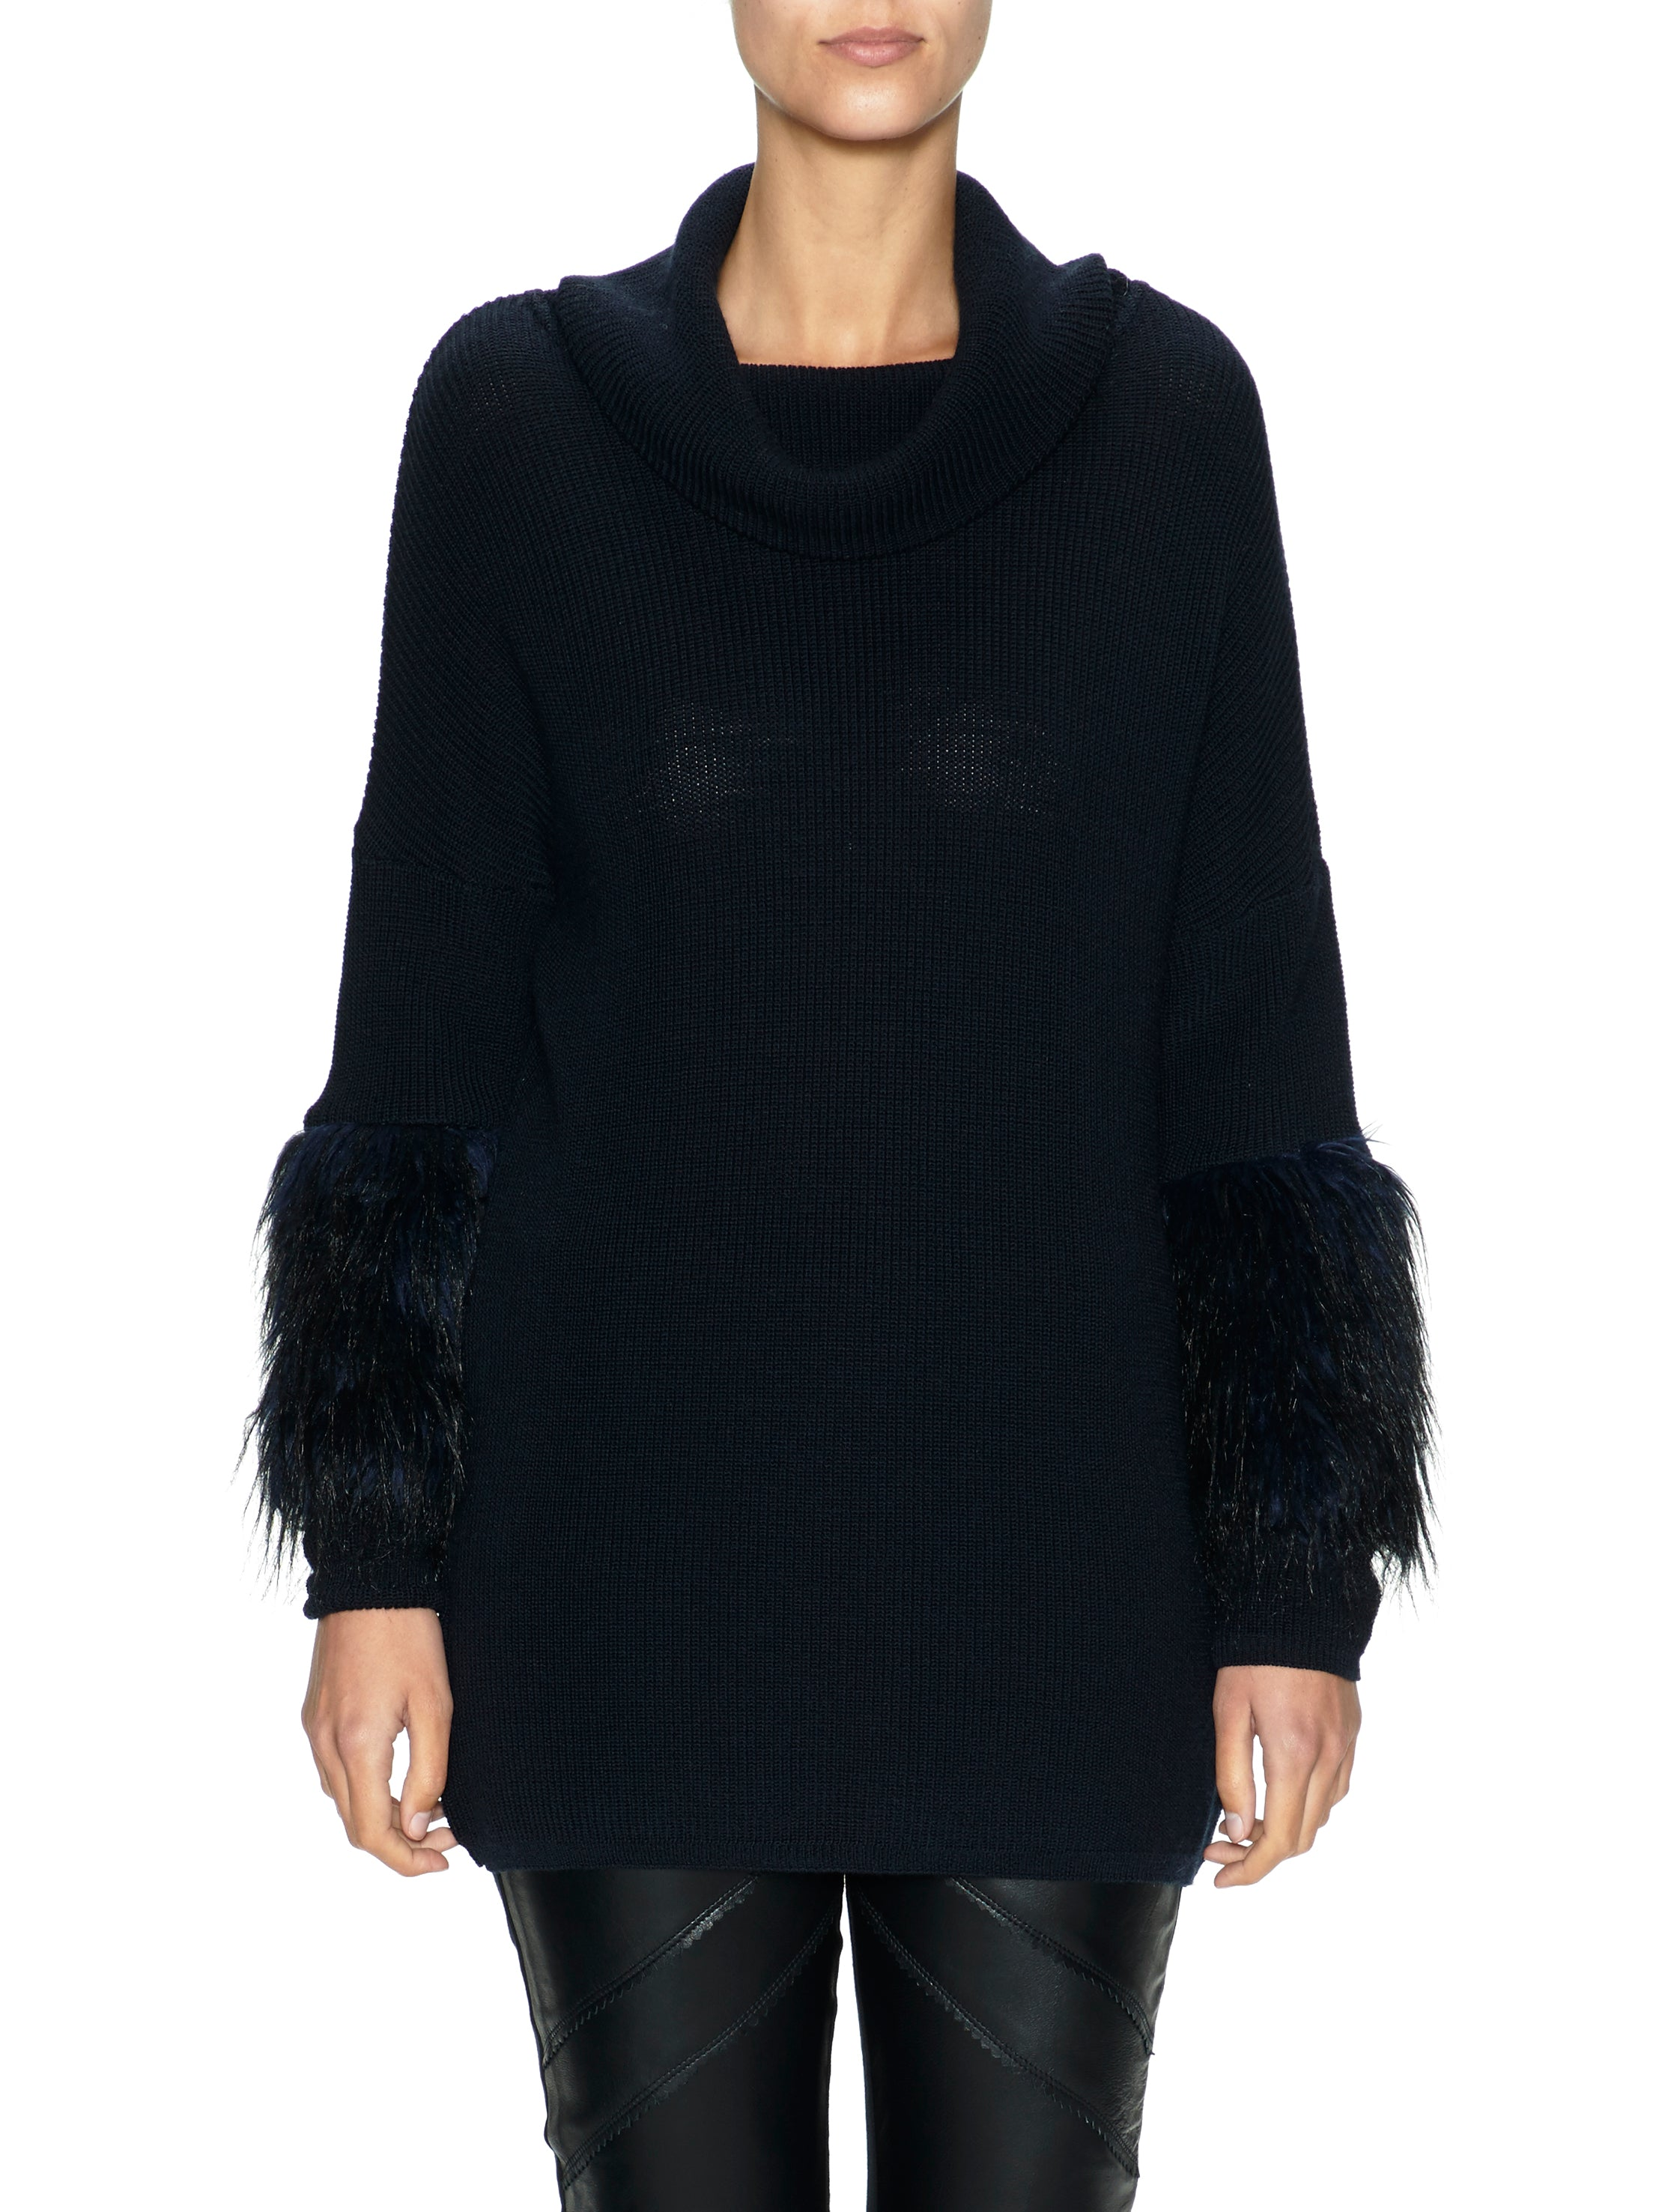 Knit Jumper with Faux Fur Sleeves (New Colourway)